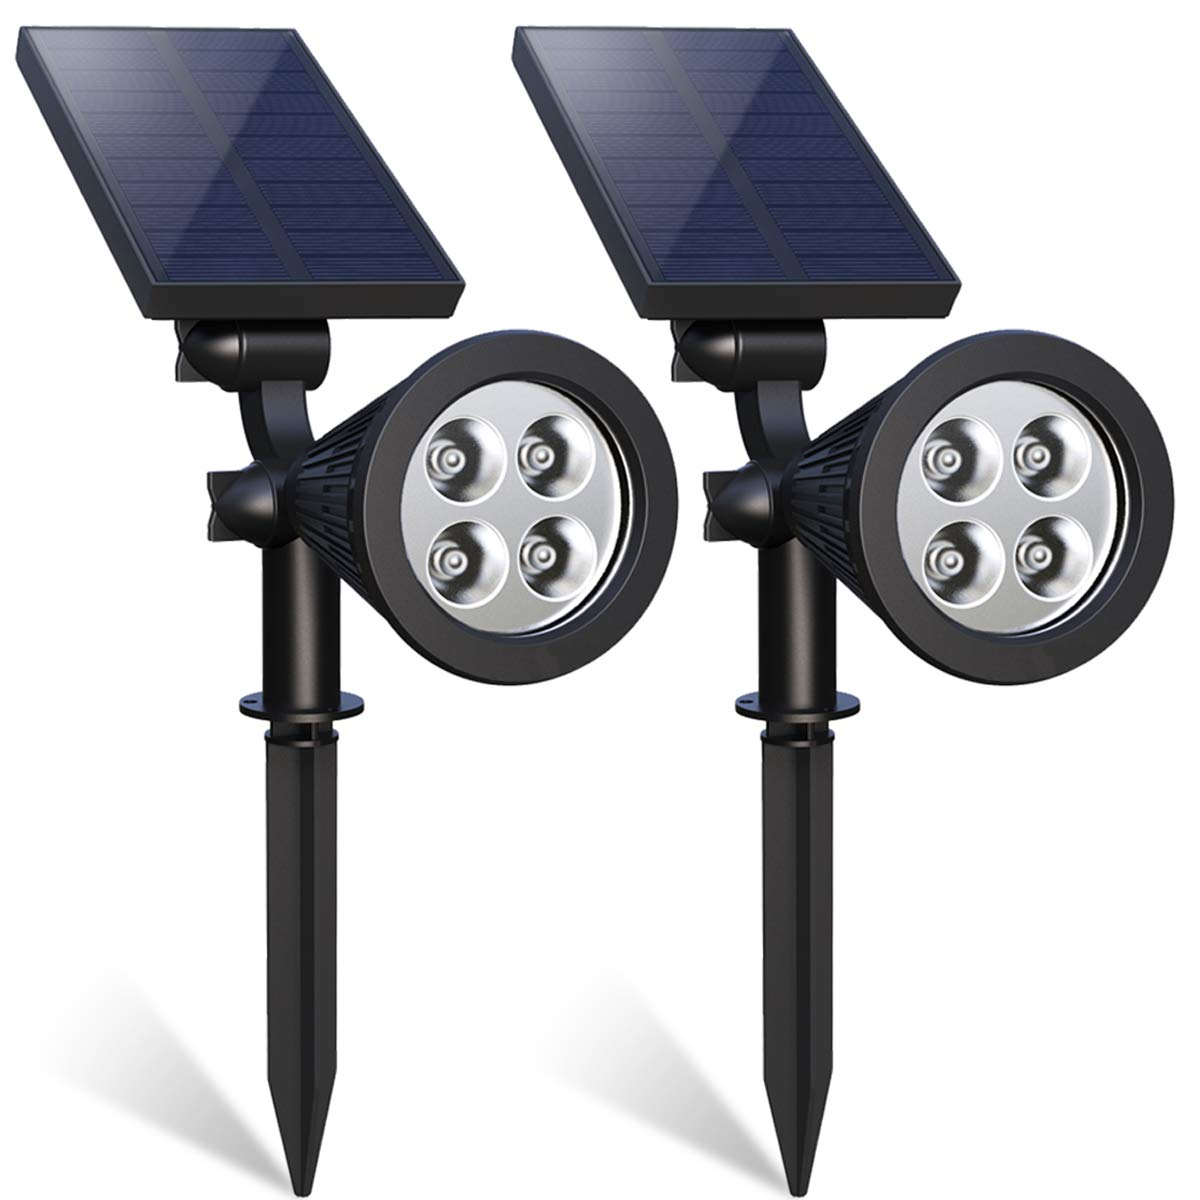 Solar Landscape Spotlight, 4-LED Bulbs Solar Landscape Lights 180 ° Adjustable Waterproof Outdoor Security Lighting 2-in-1 Wall Lights Auto On/Off for Backyard Driveway Patio Gardens Lawn Pool by Flowmist